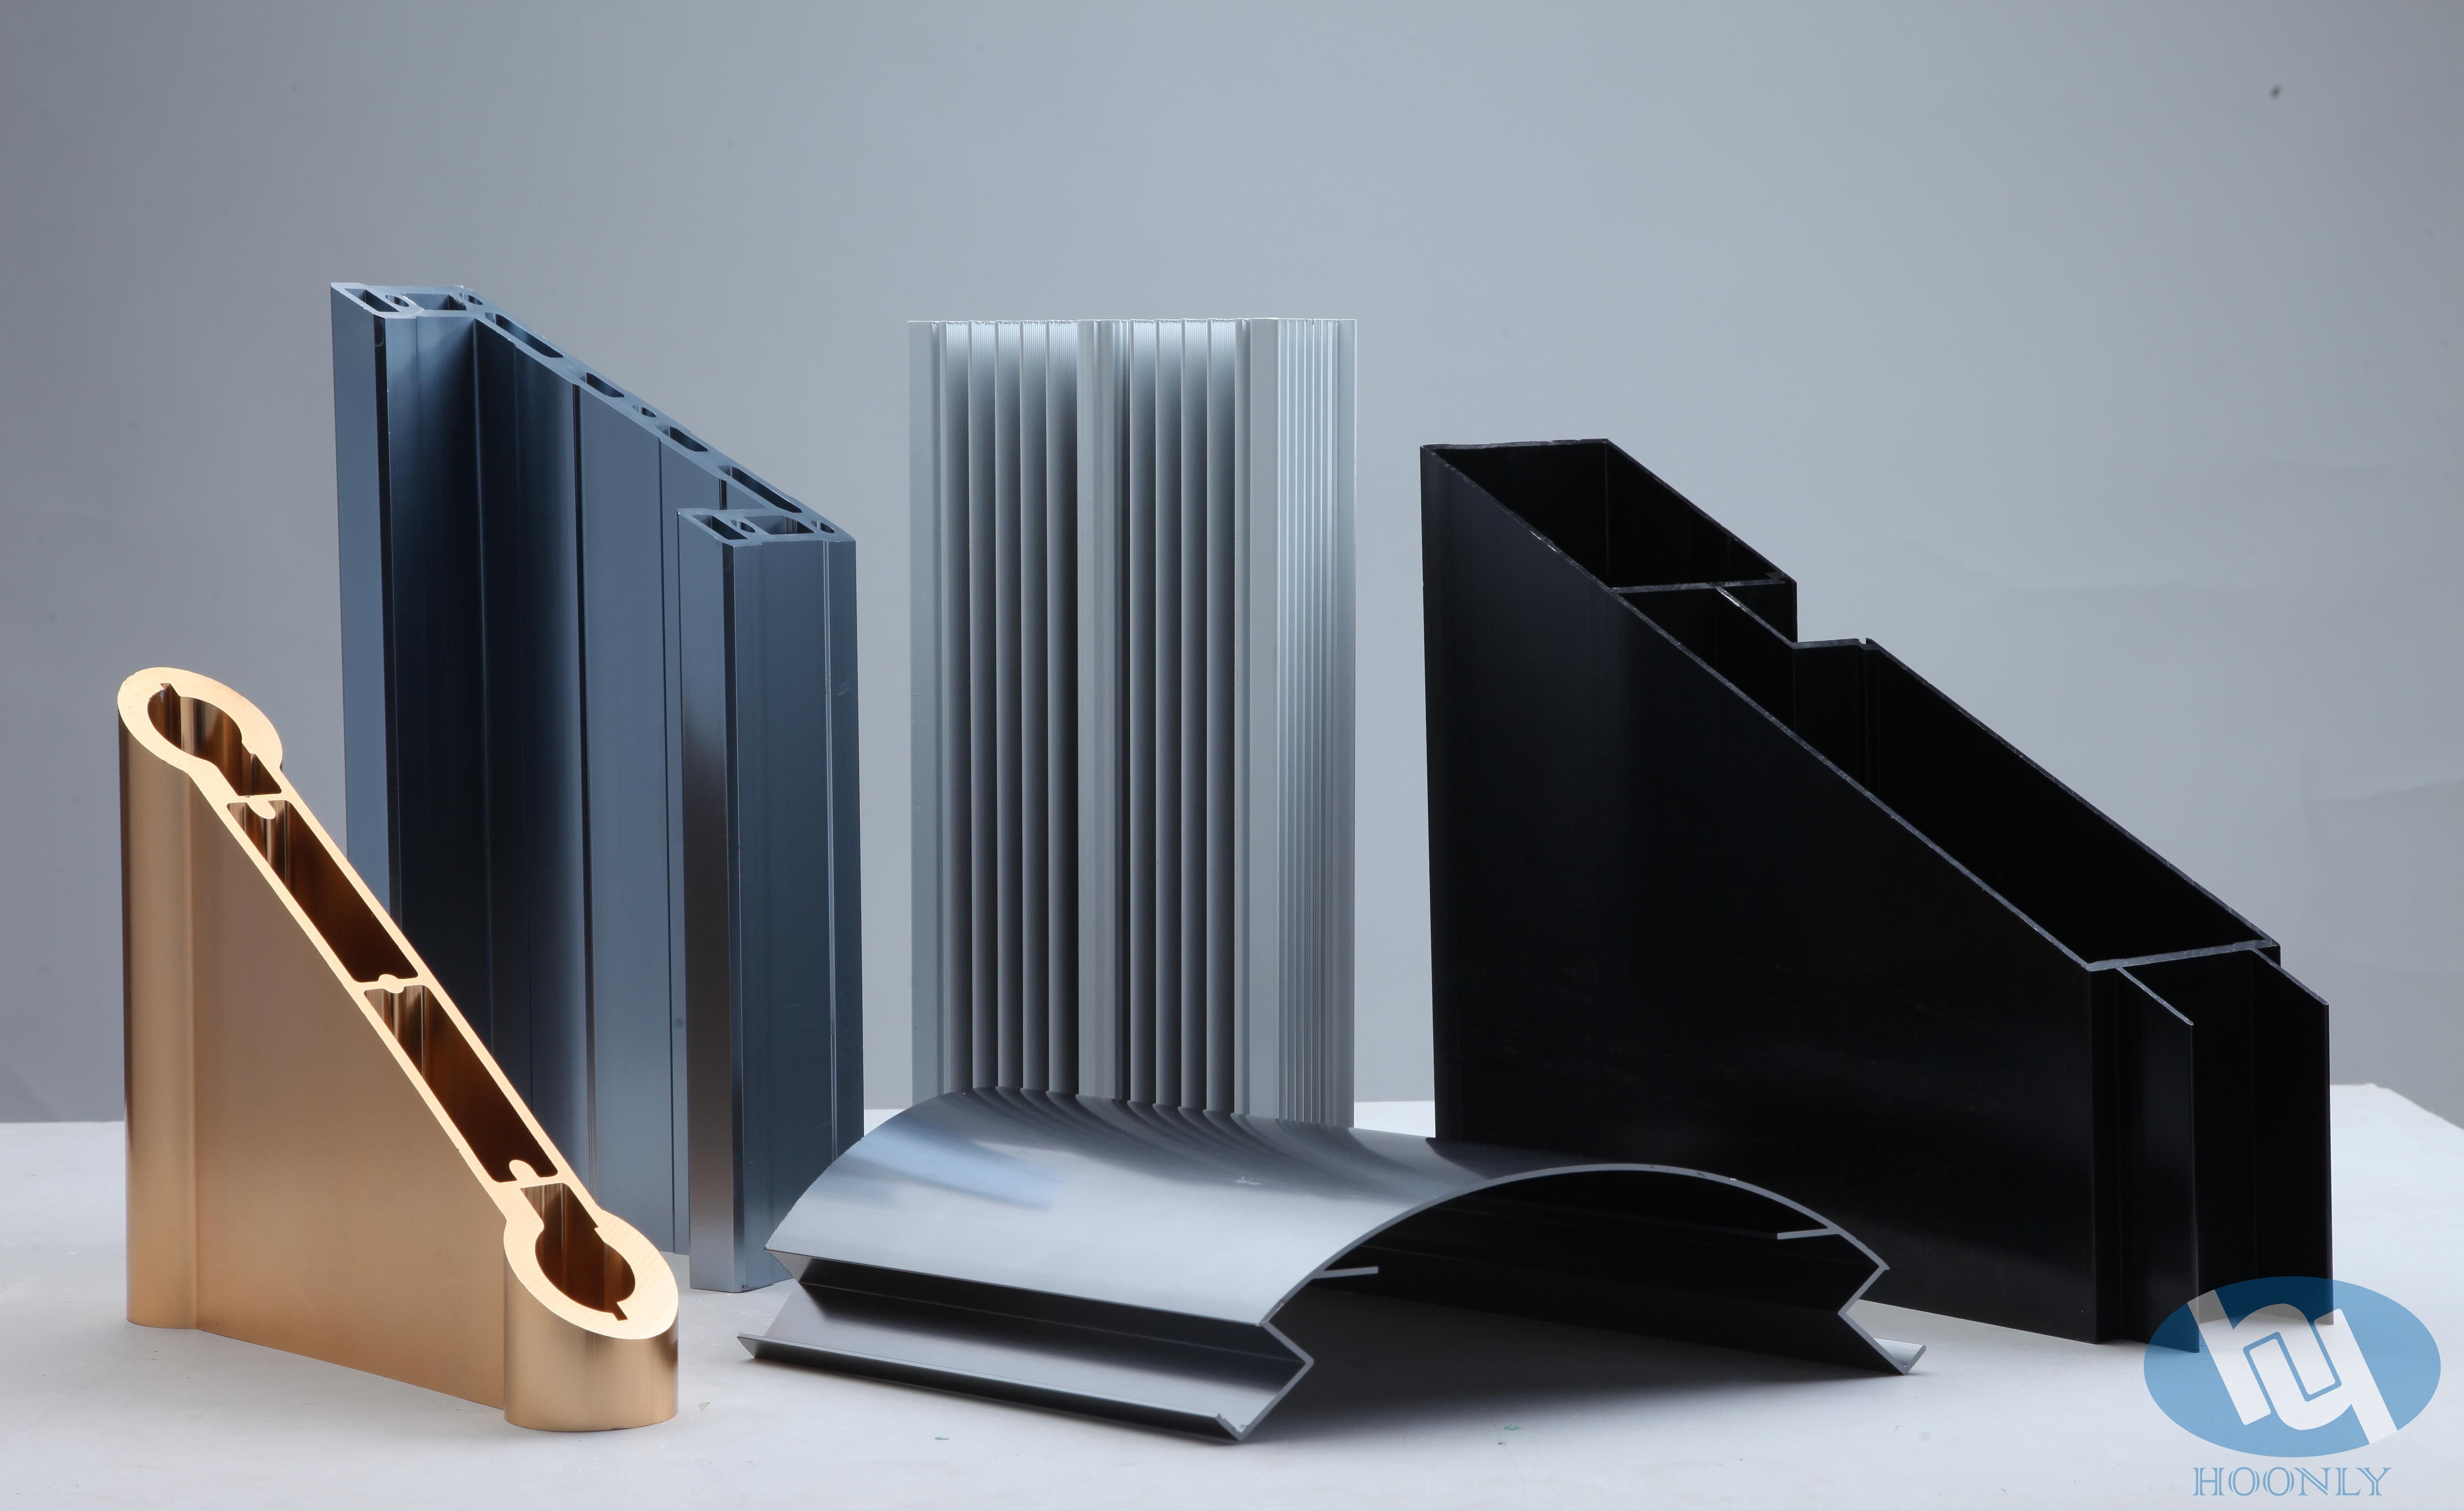 HOONLY - China Aluminium Extrusion Profile Supplier